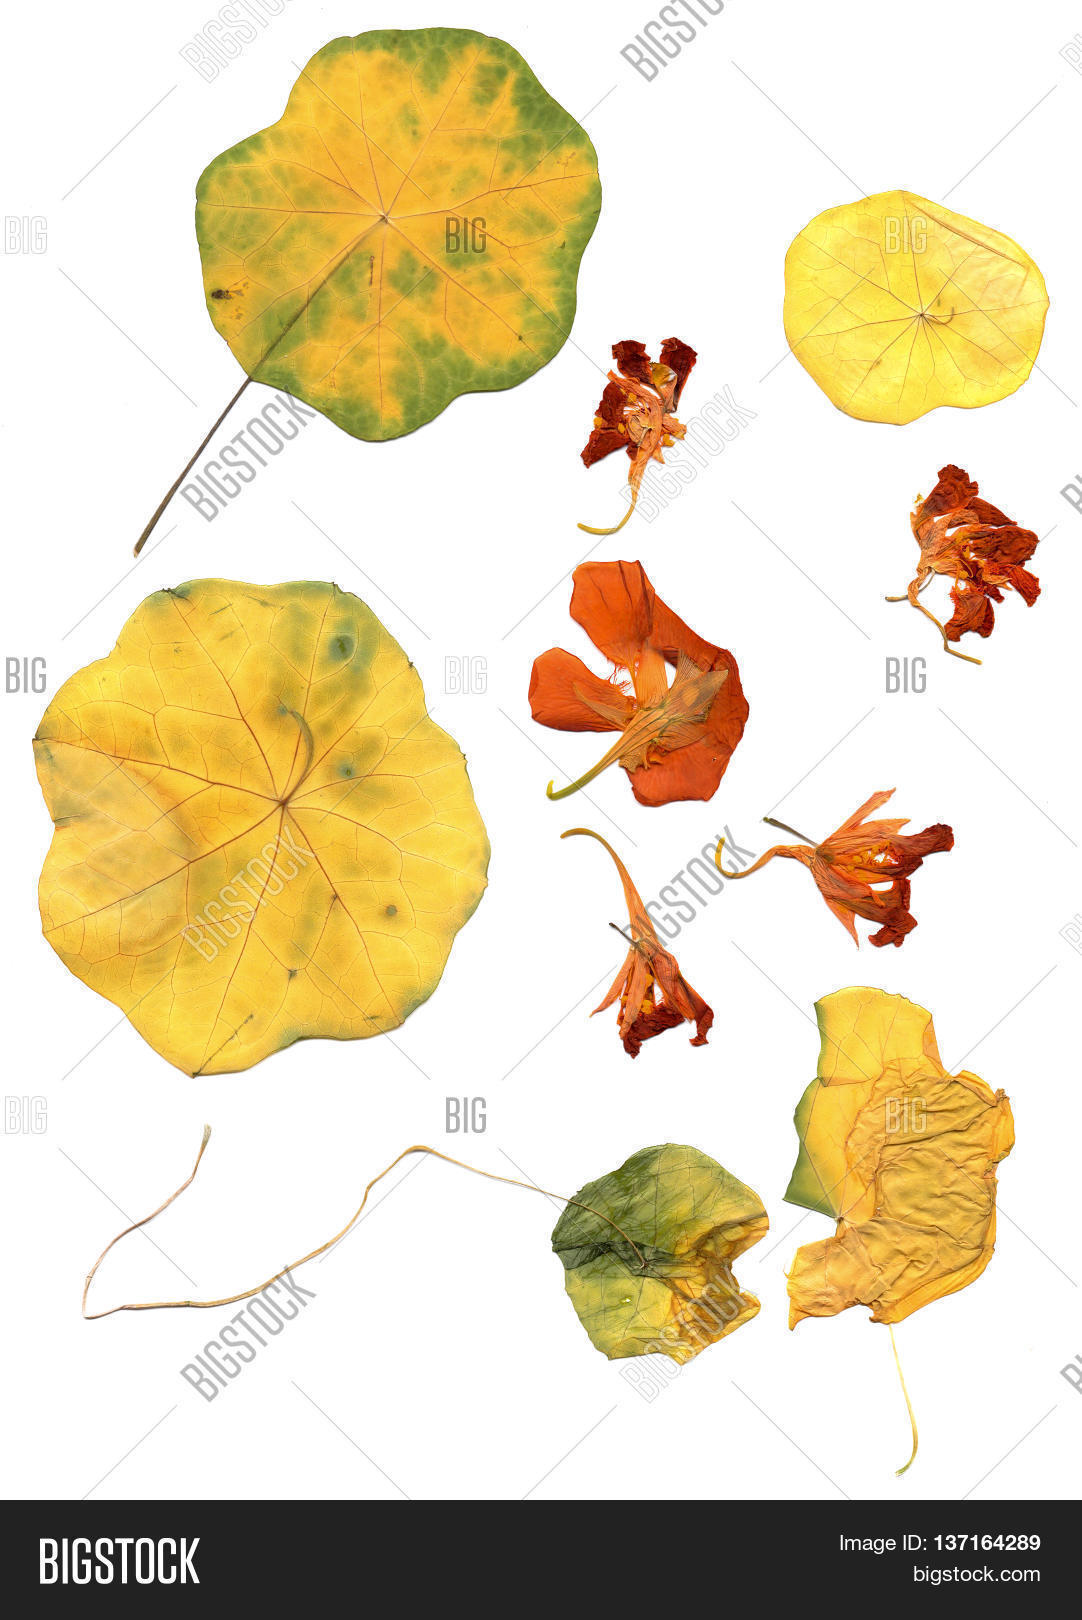 How to scrapbook dried flowers - Pressed And Dried Flowers Petal Leaves Of Blossom Nasturtium Isolated On White Scrapbook Background